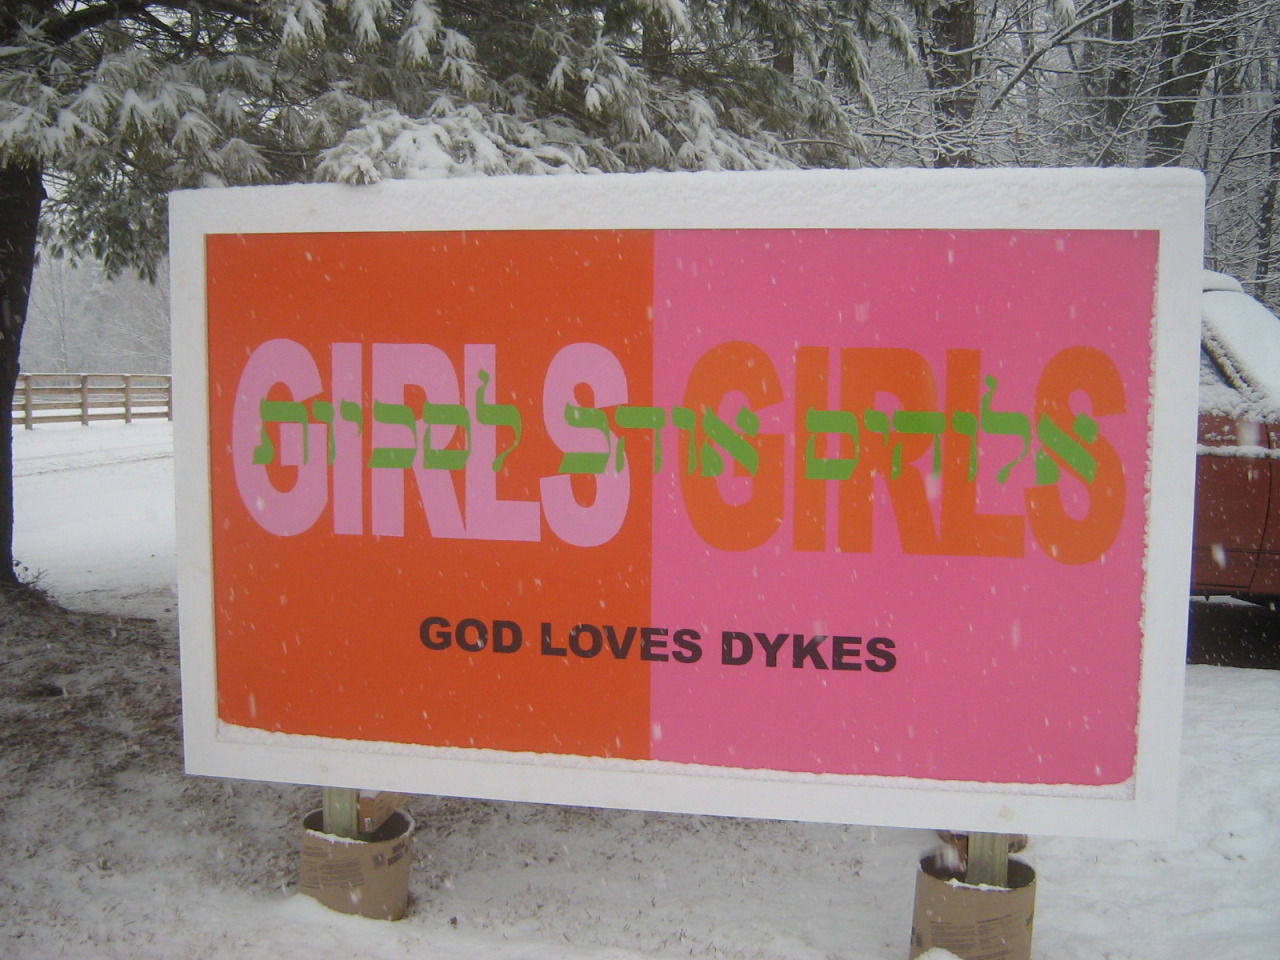 Mike Osterhout, GOD LOVE DYKES, 2011. Courtesy of the artist.